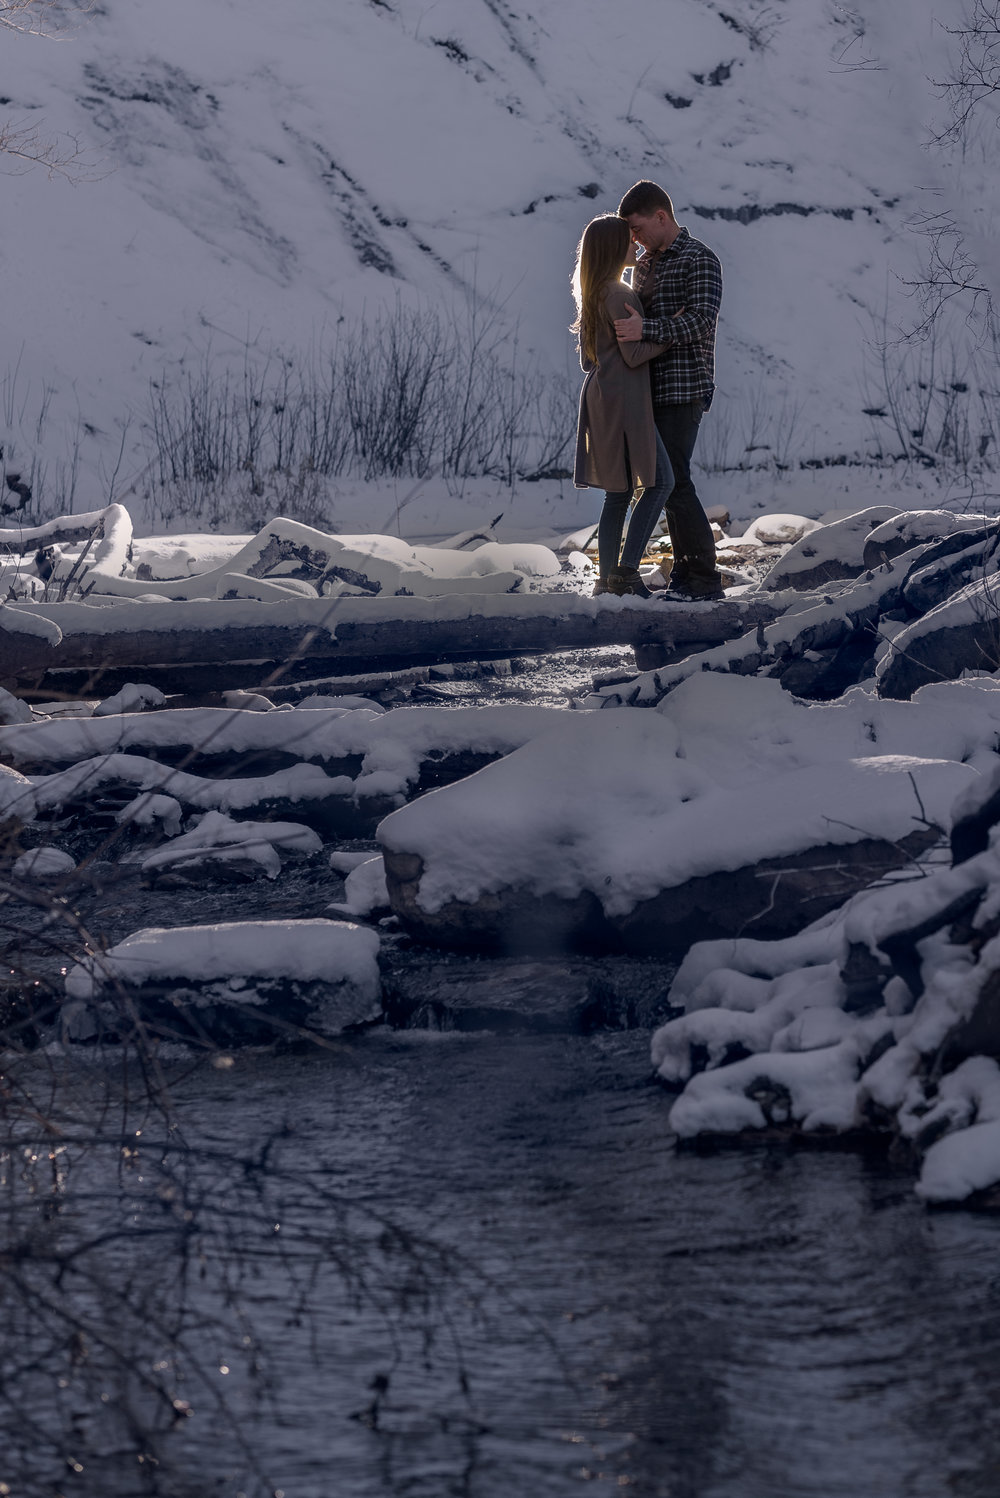 2018_02_25_Spriggs_Ryan_and_Julianna_Frushour-2252-Edit.jpg